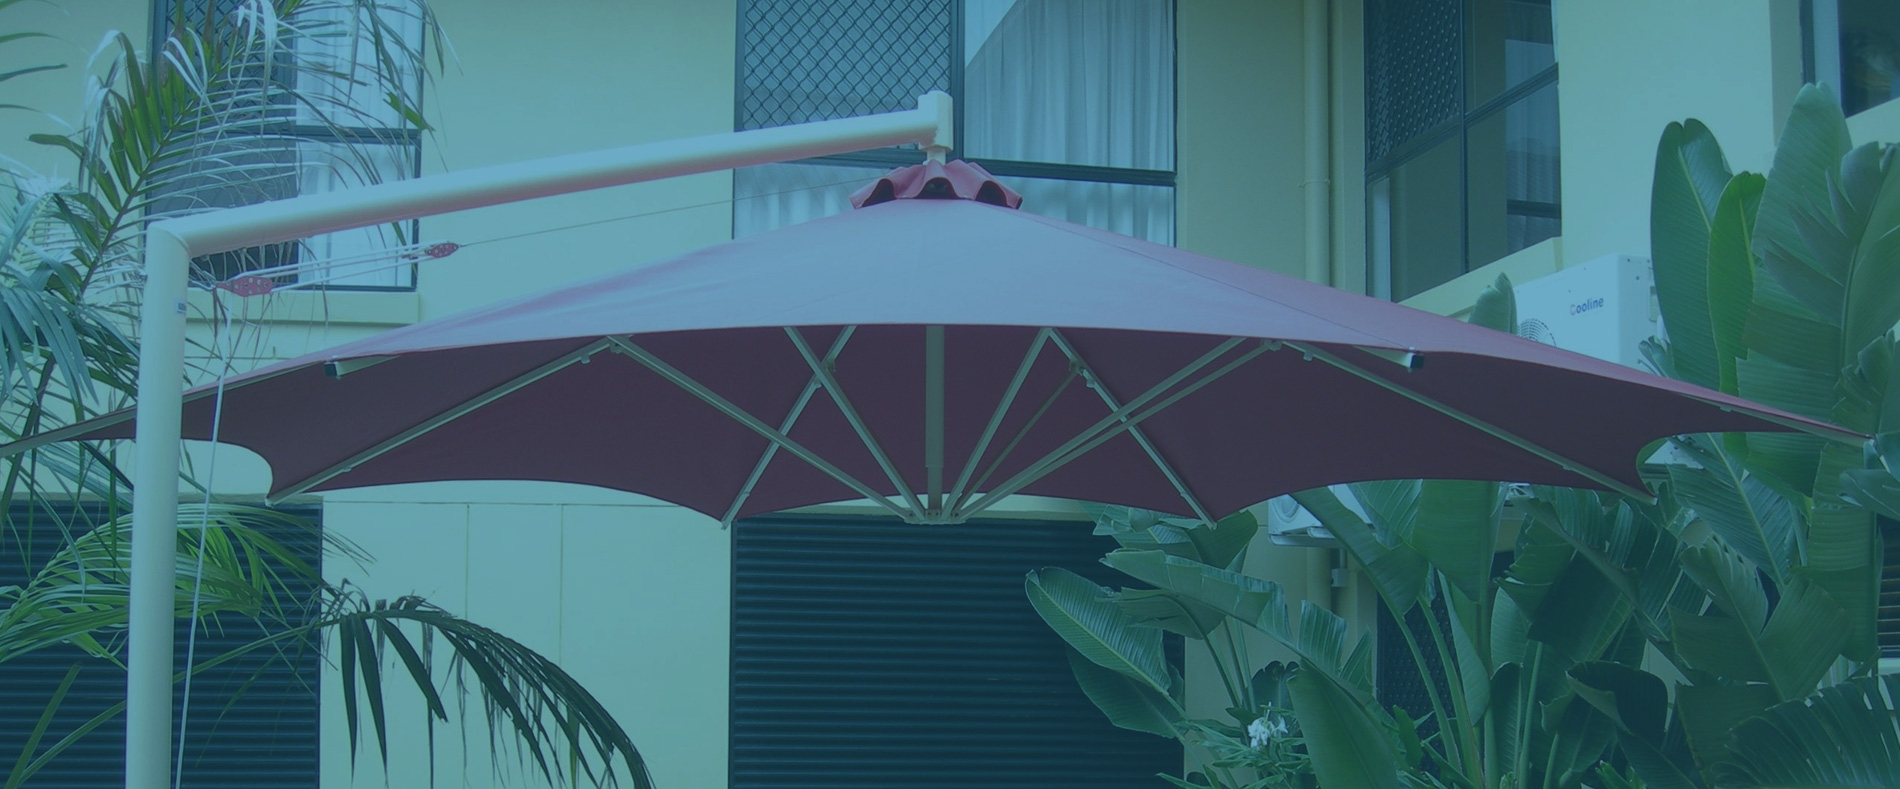 Side Post Outdoor Umbrellas Brisbane Perth And Qld Australia